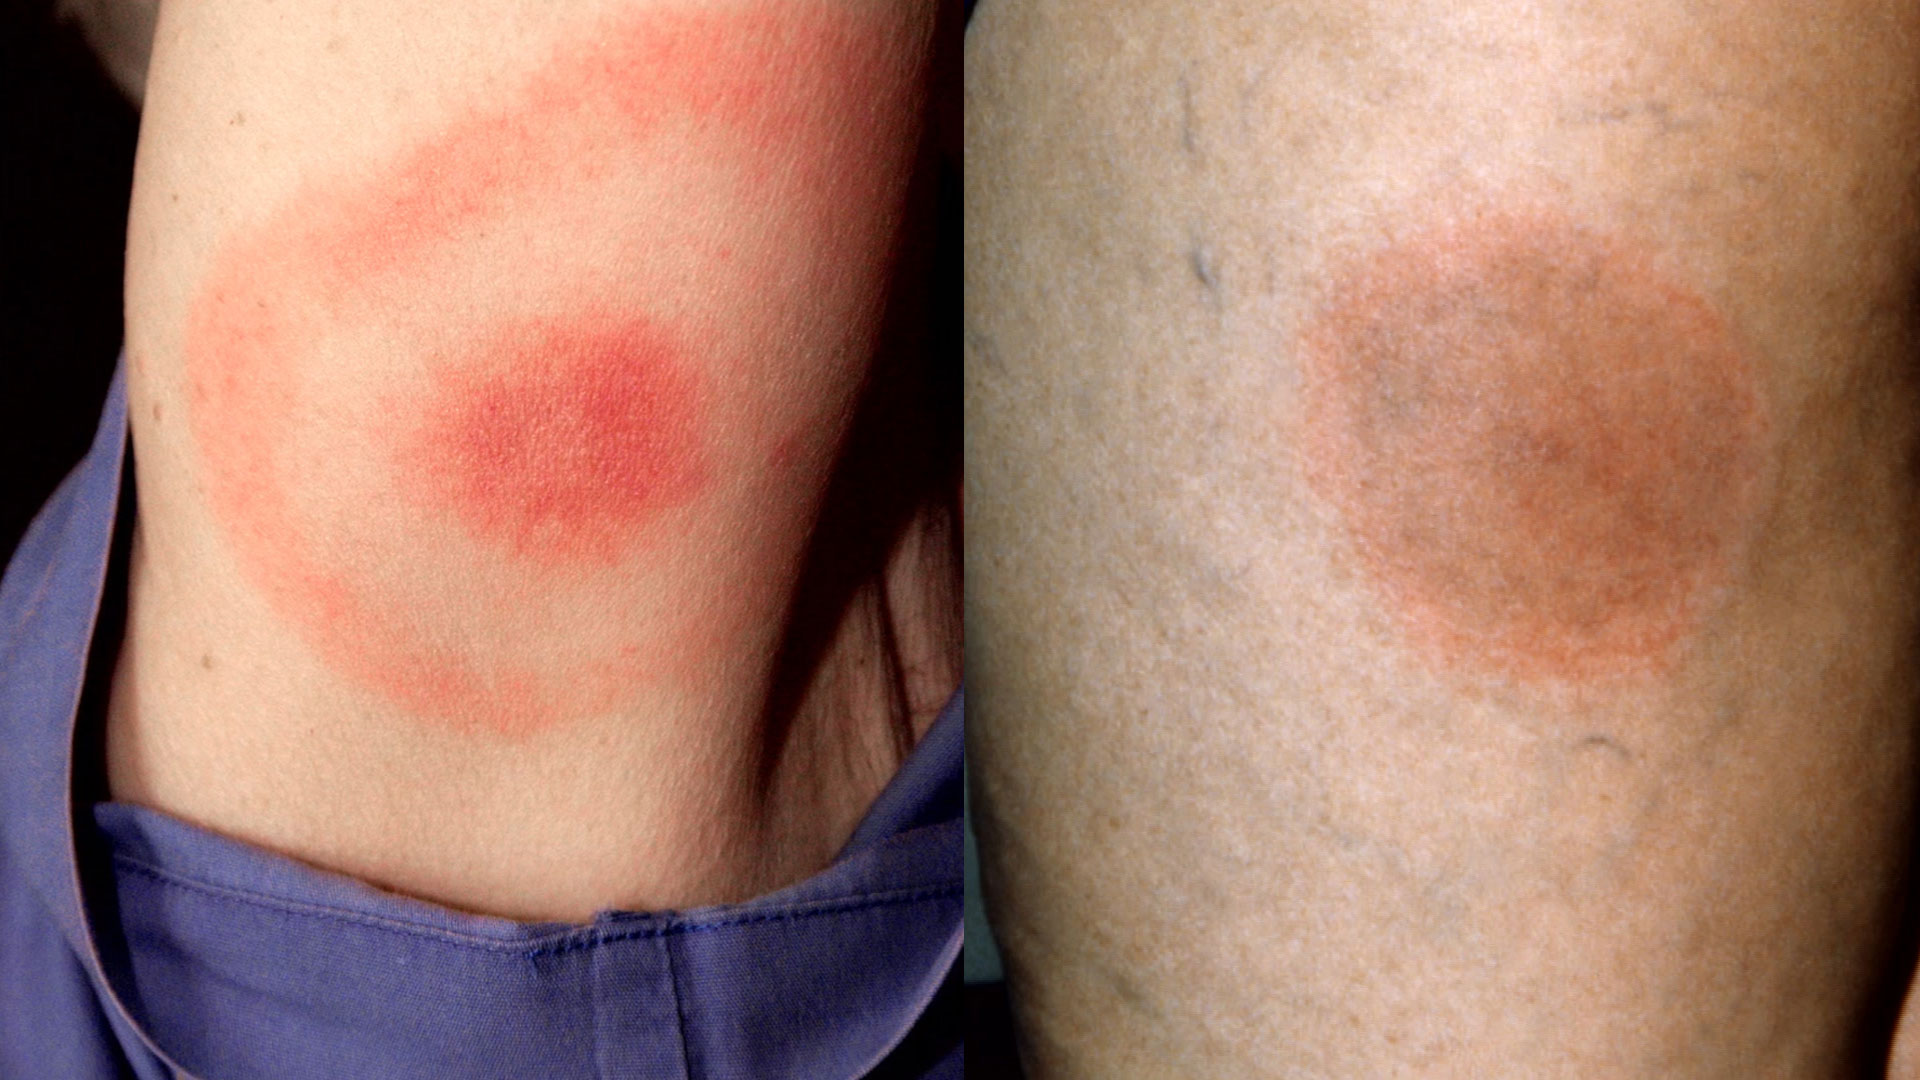 Not all tick bites result in the iconic bullseye rash (left), many can leave a large red mark instead. Photos by: Center for Disease Control and Prevention